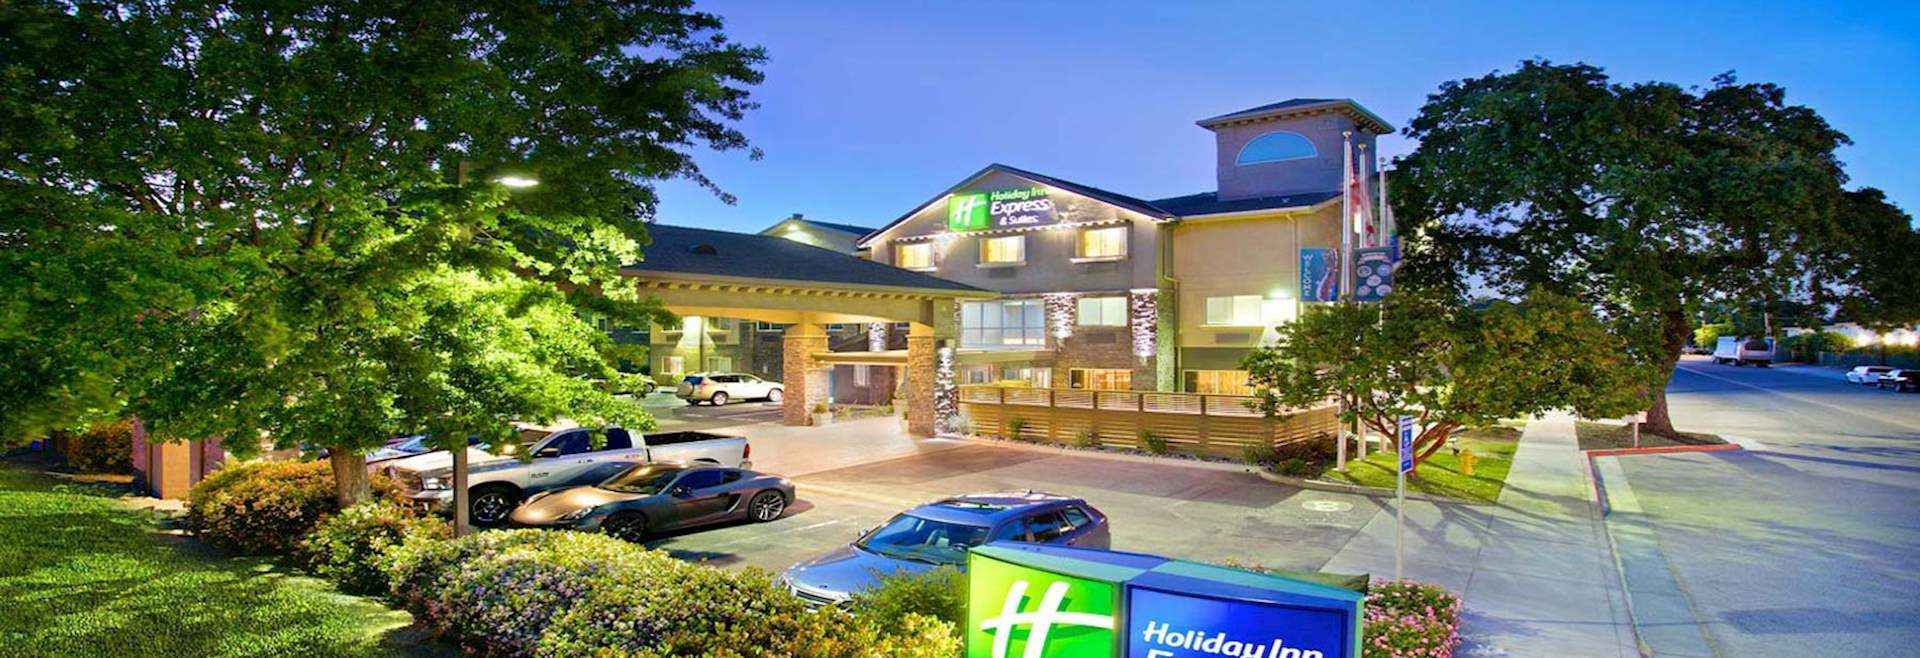 Hotel Exterior - Holiday Inn Express & Suites Paso Robles